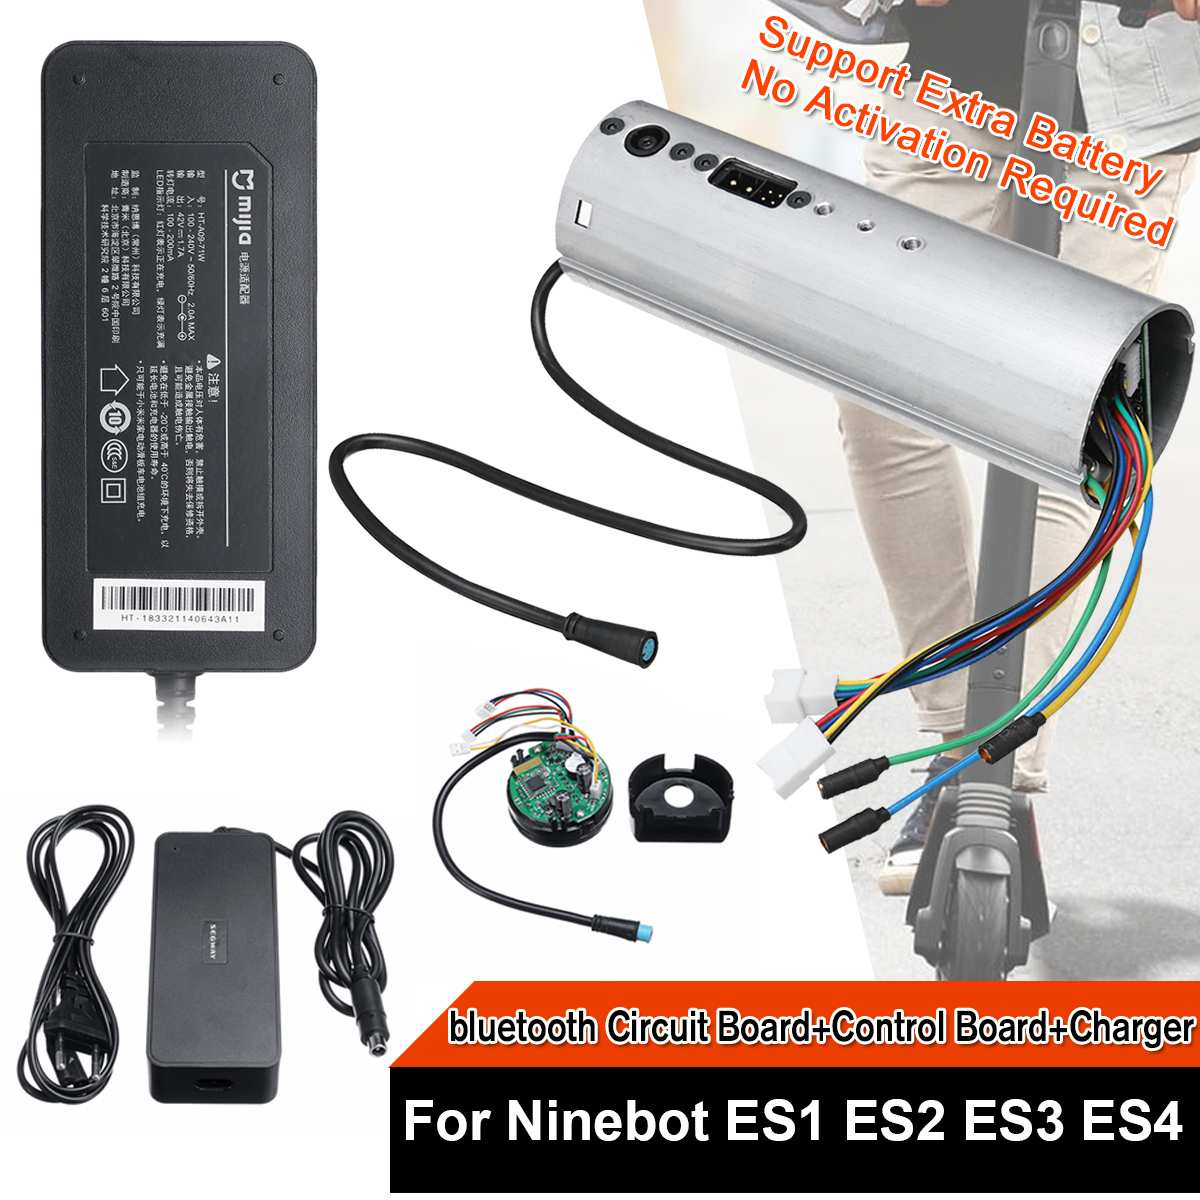 Good quality and cheap ninebot es2 board in Store Xprice